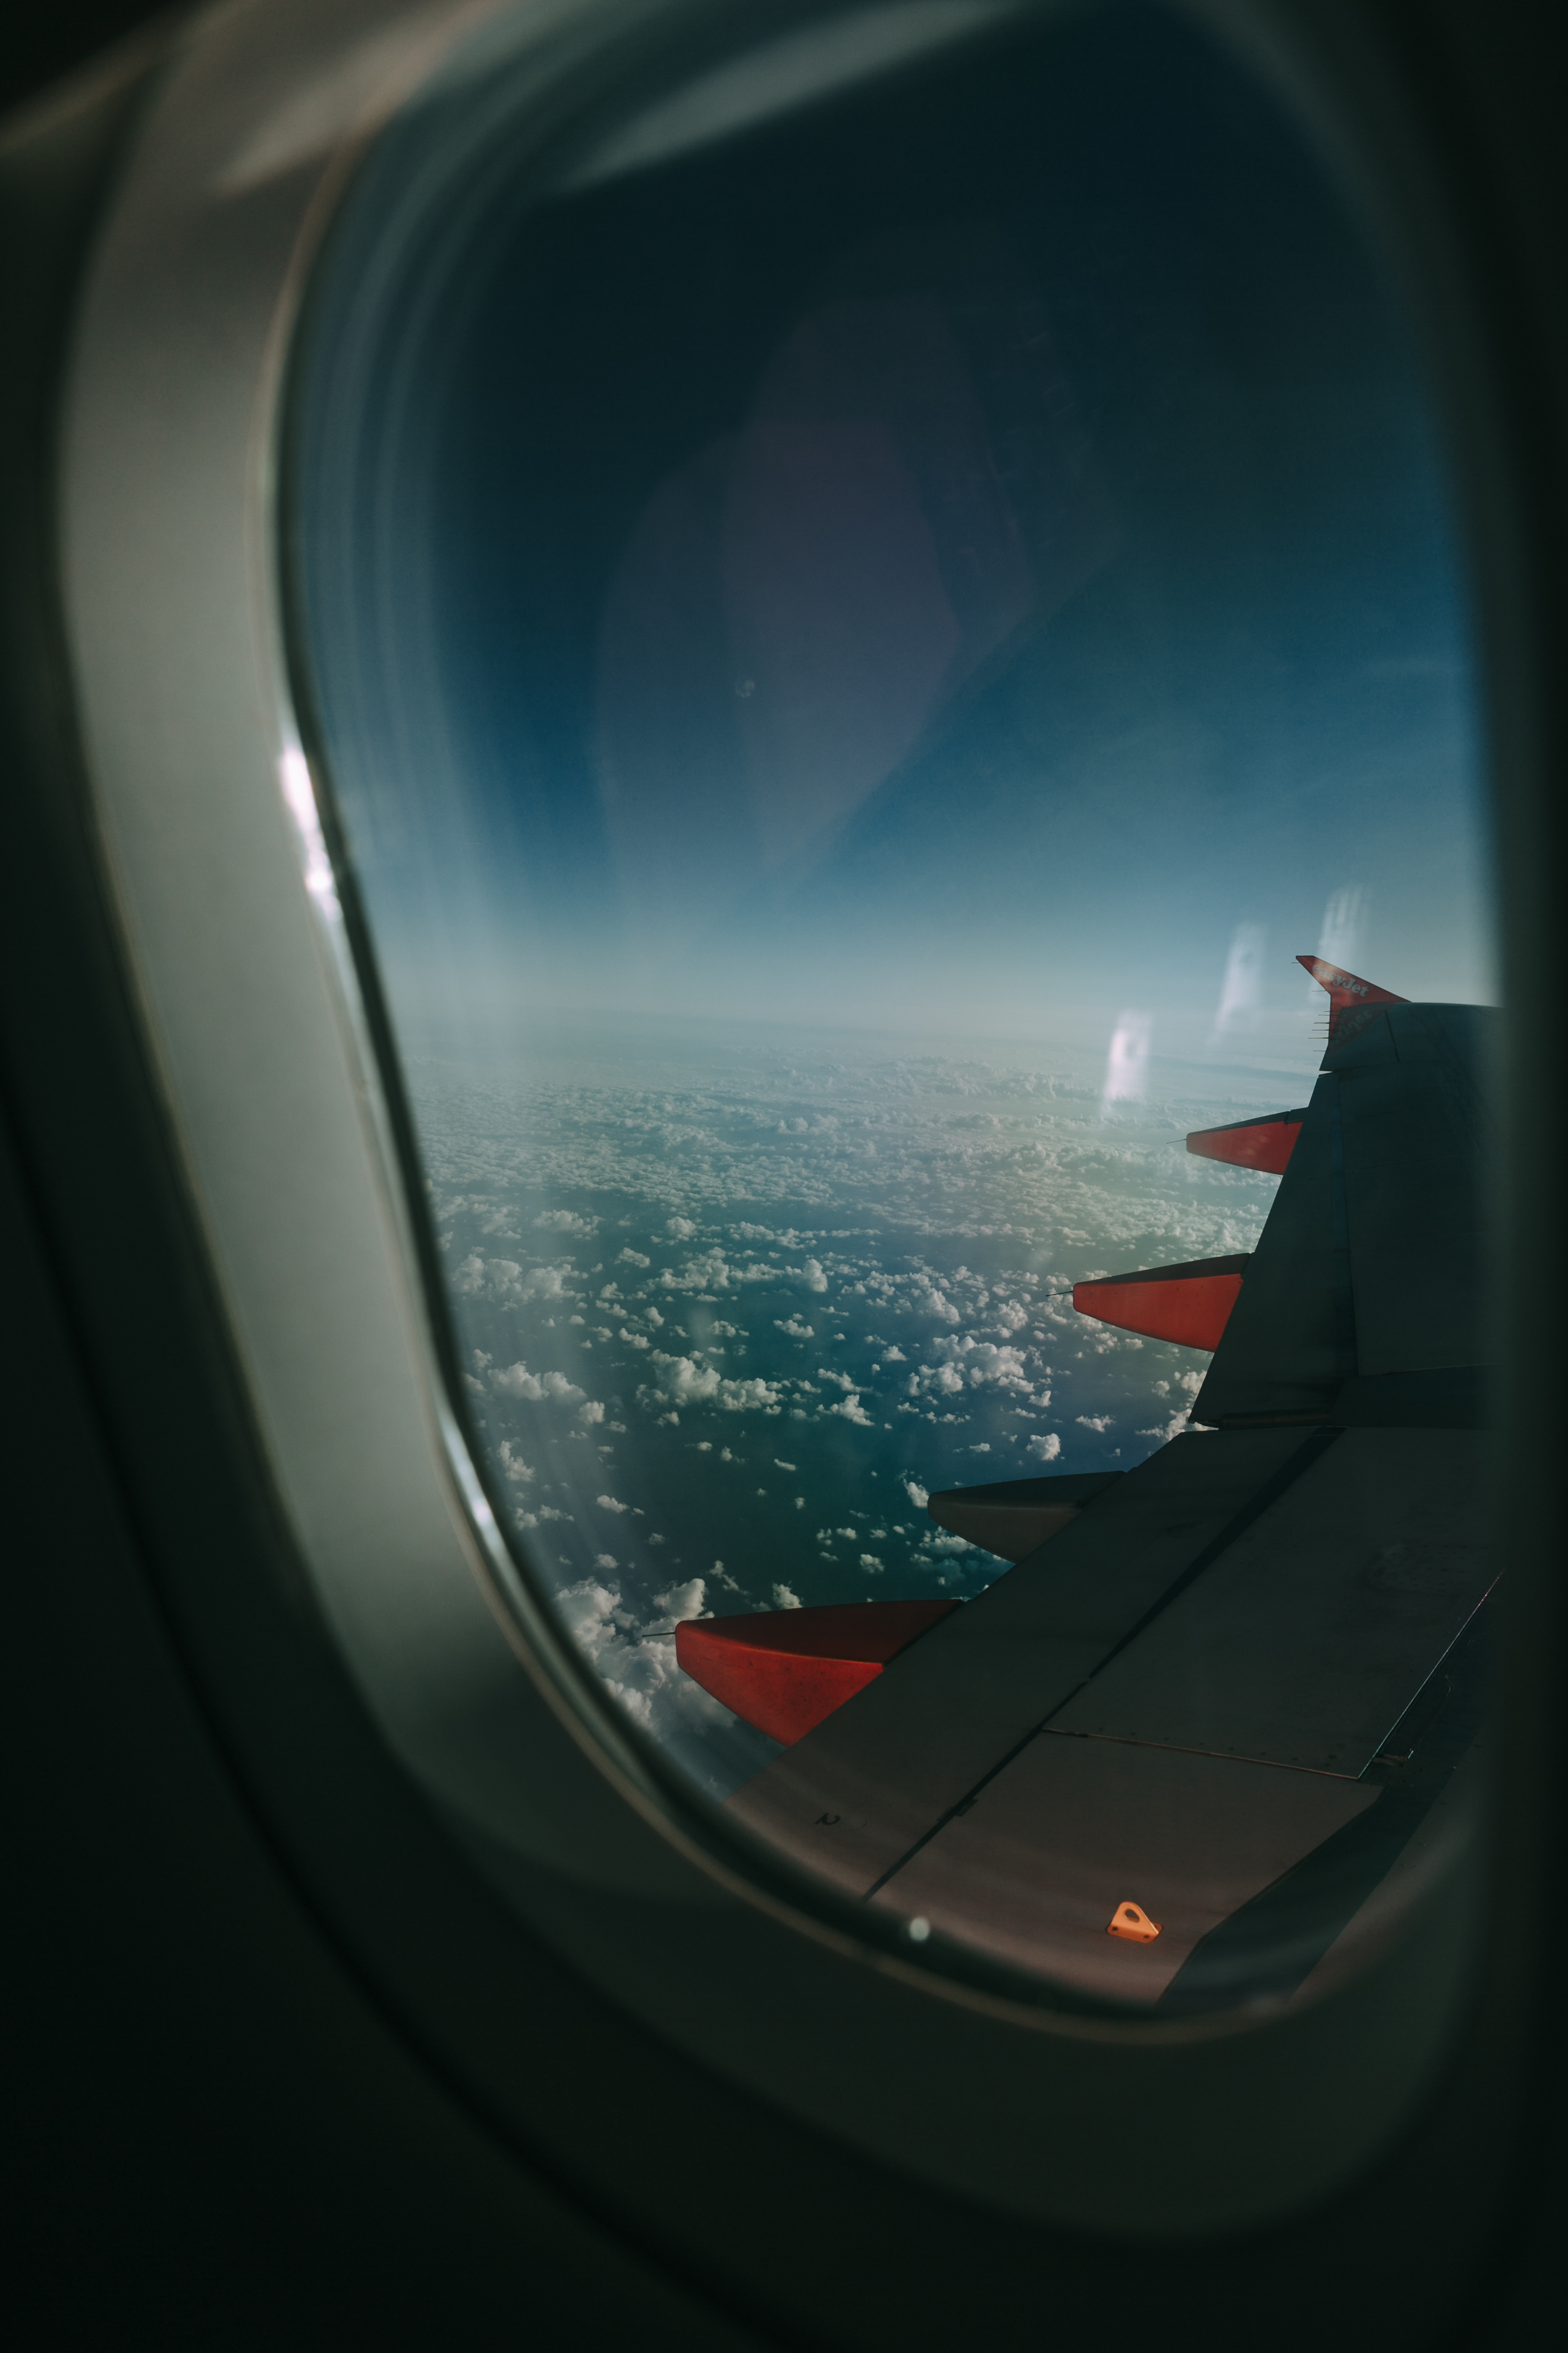 Airplane Window Overlooking Clouds 183 Free Stock Photo